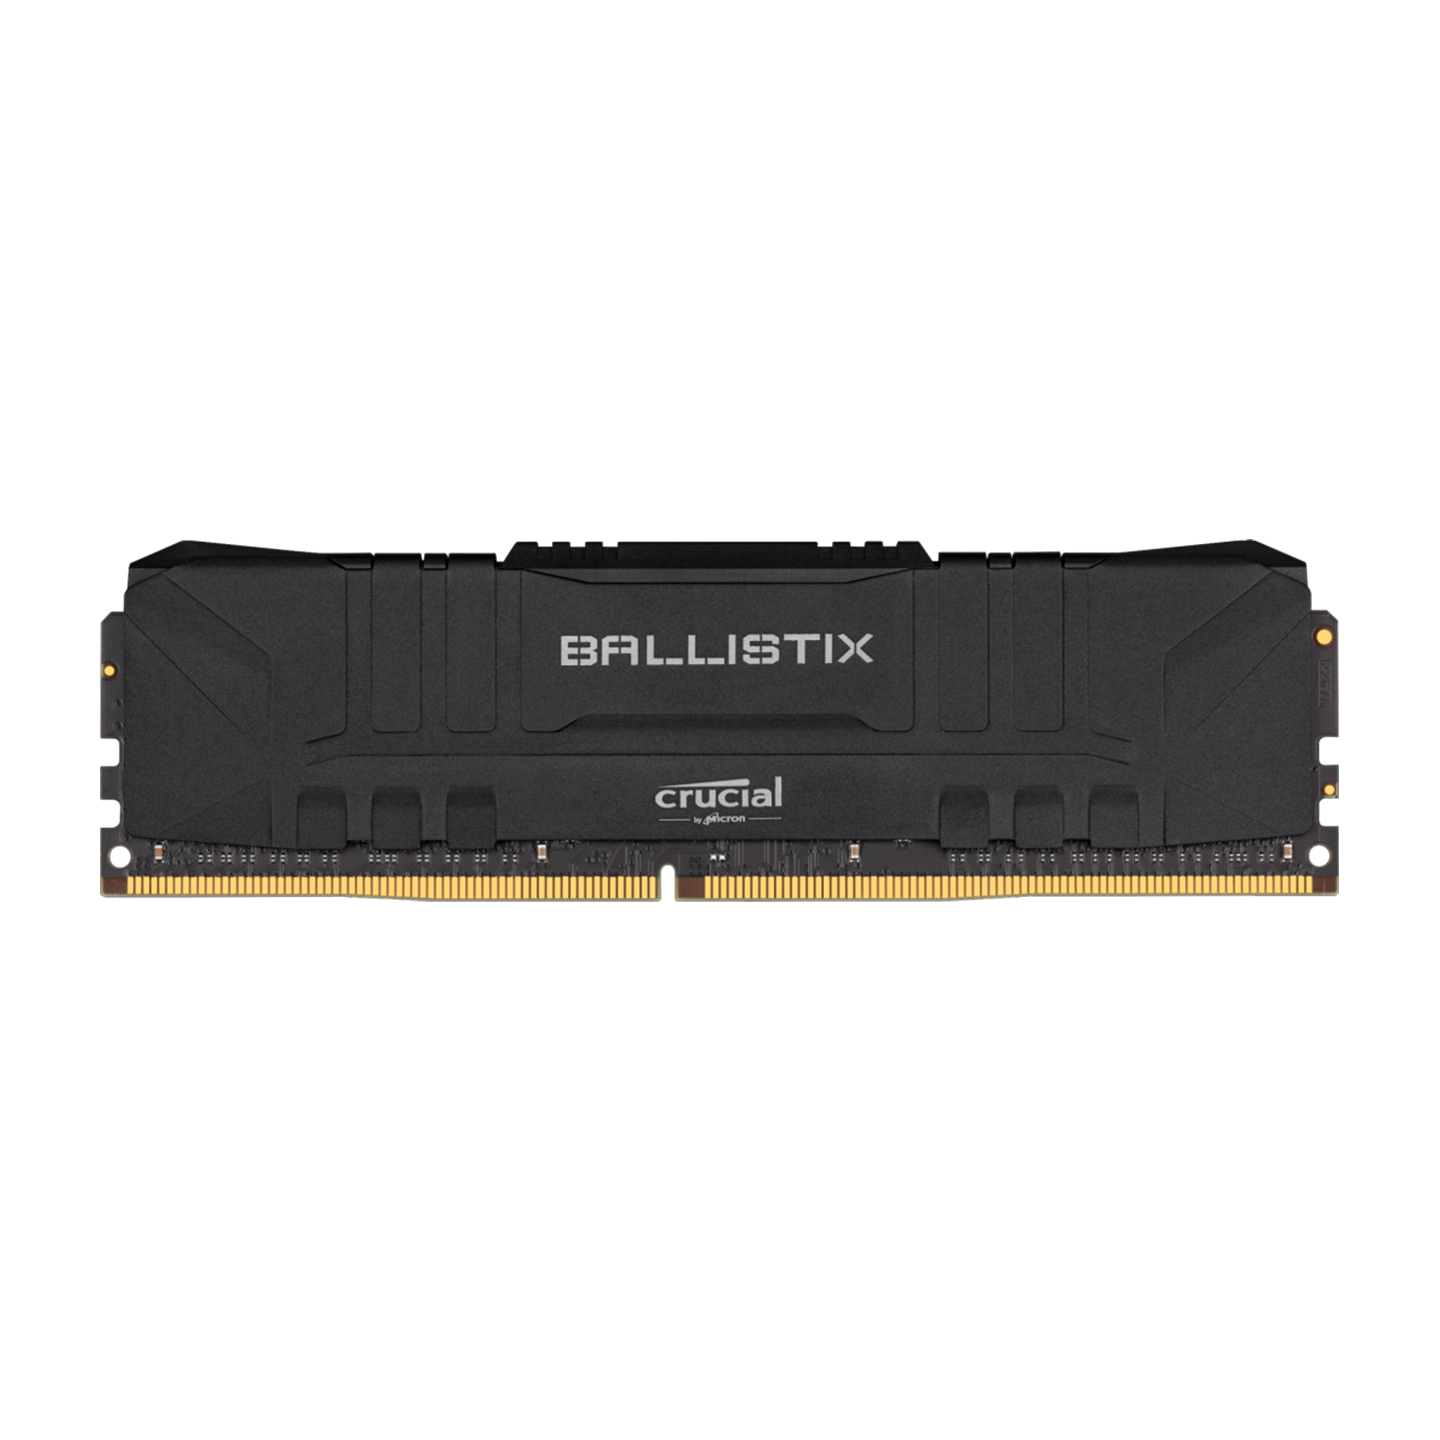 Ballistix Crucial BL8G36C16U4B 8GB DDR4 3600MT/s CL16 Unbuffered DIMM 288pin Black RAM